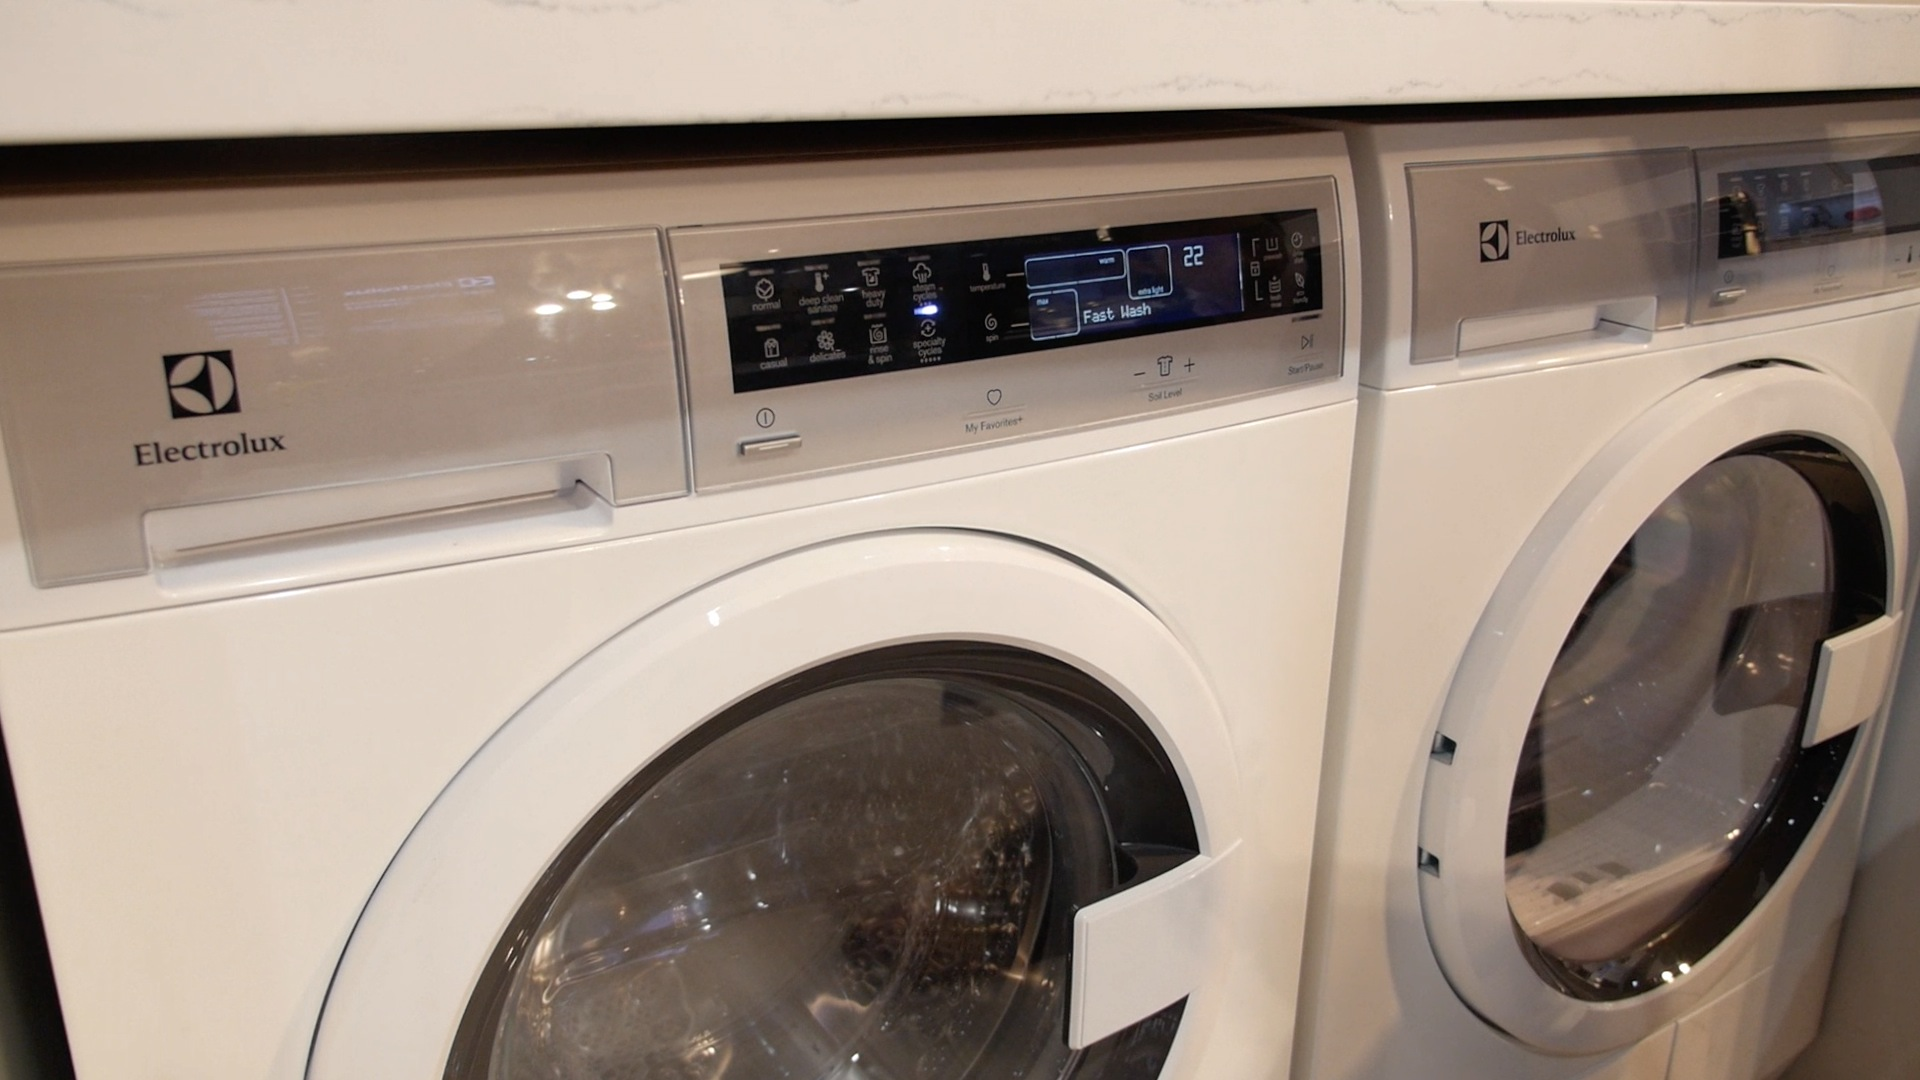 Electrolux Eied200qsw Ventless Condenser Dryer Review Frigidaire Washer And Knobs Front Load Electric Laundry